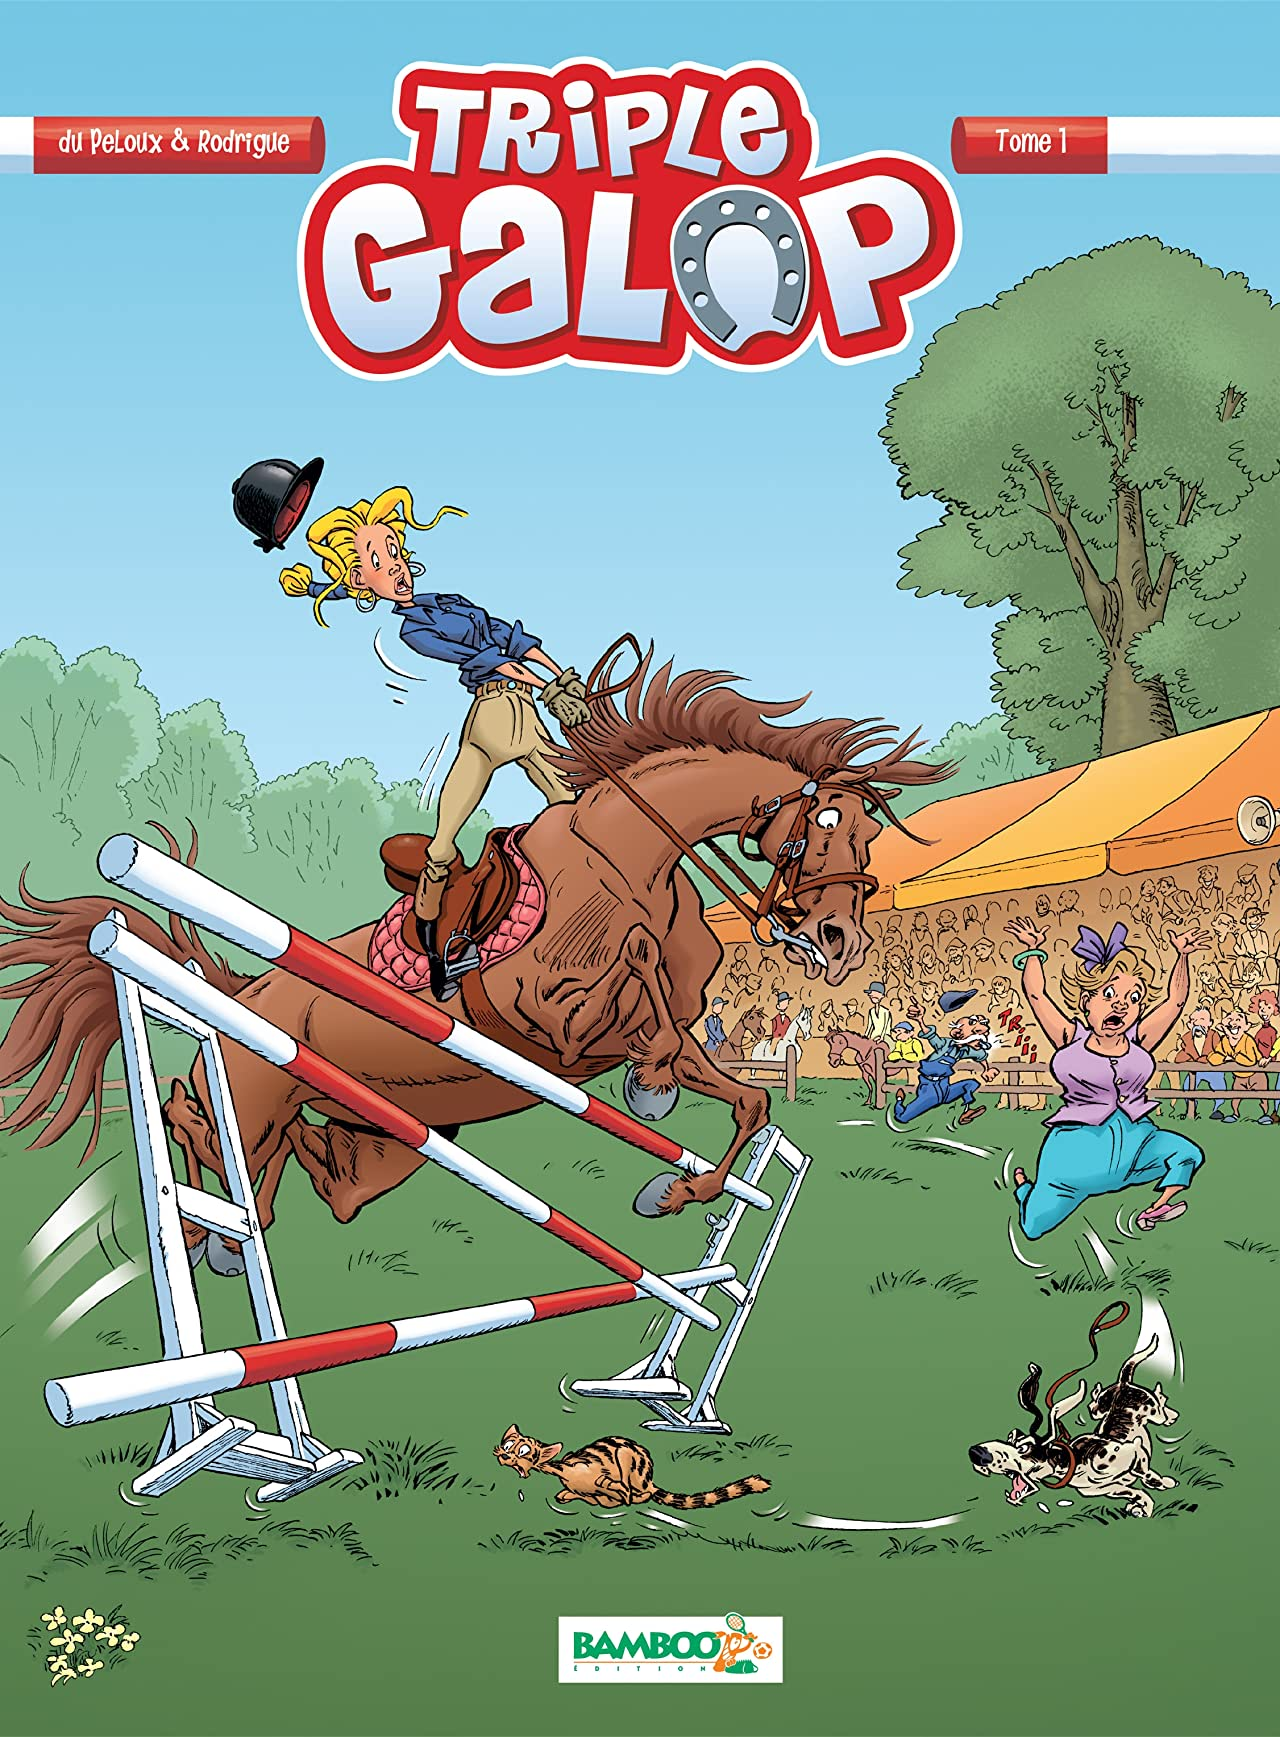 Triple Galop Vol. 1